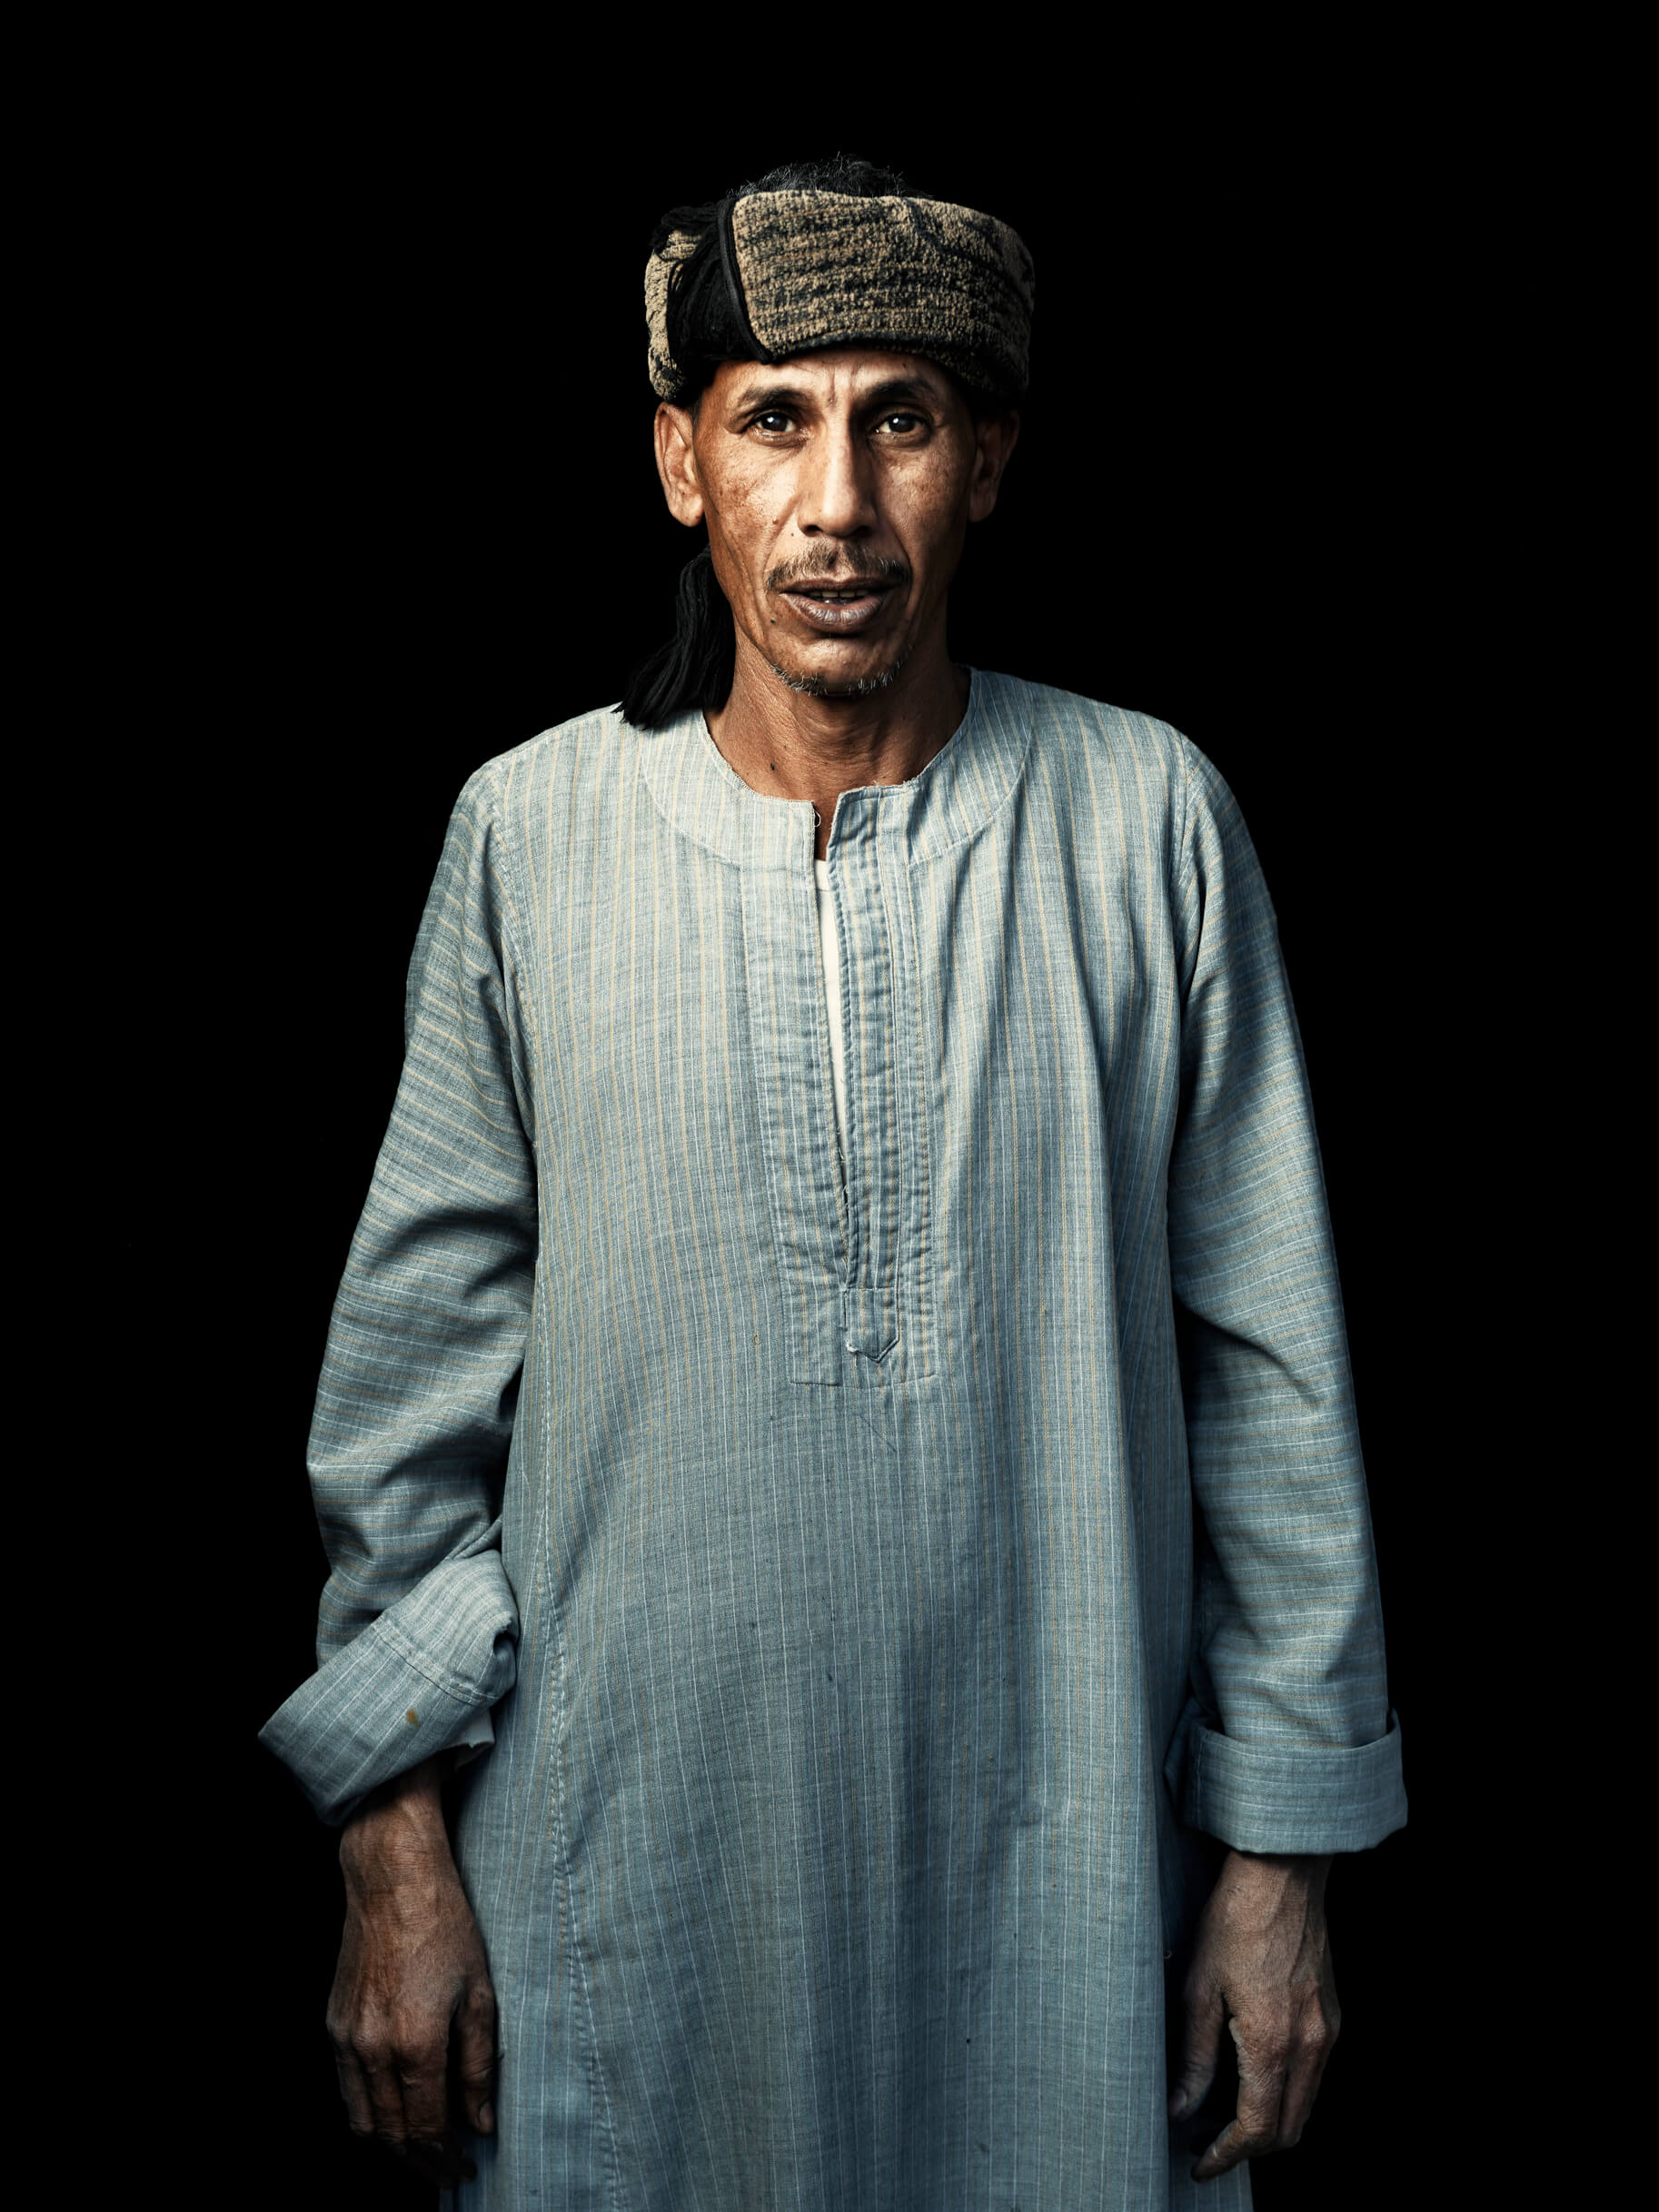 Egypt_People_Portraits_0027